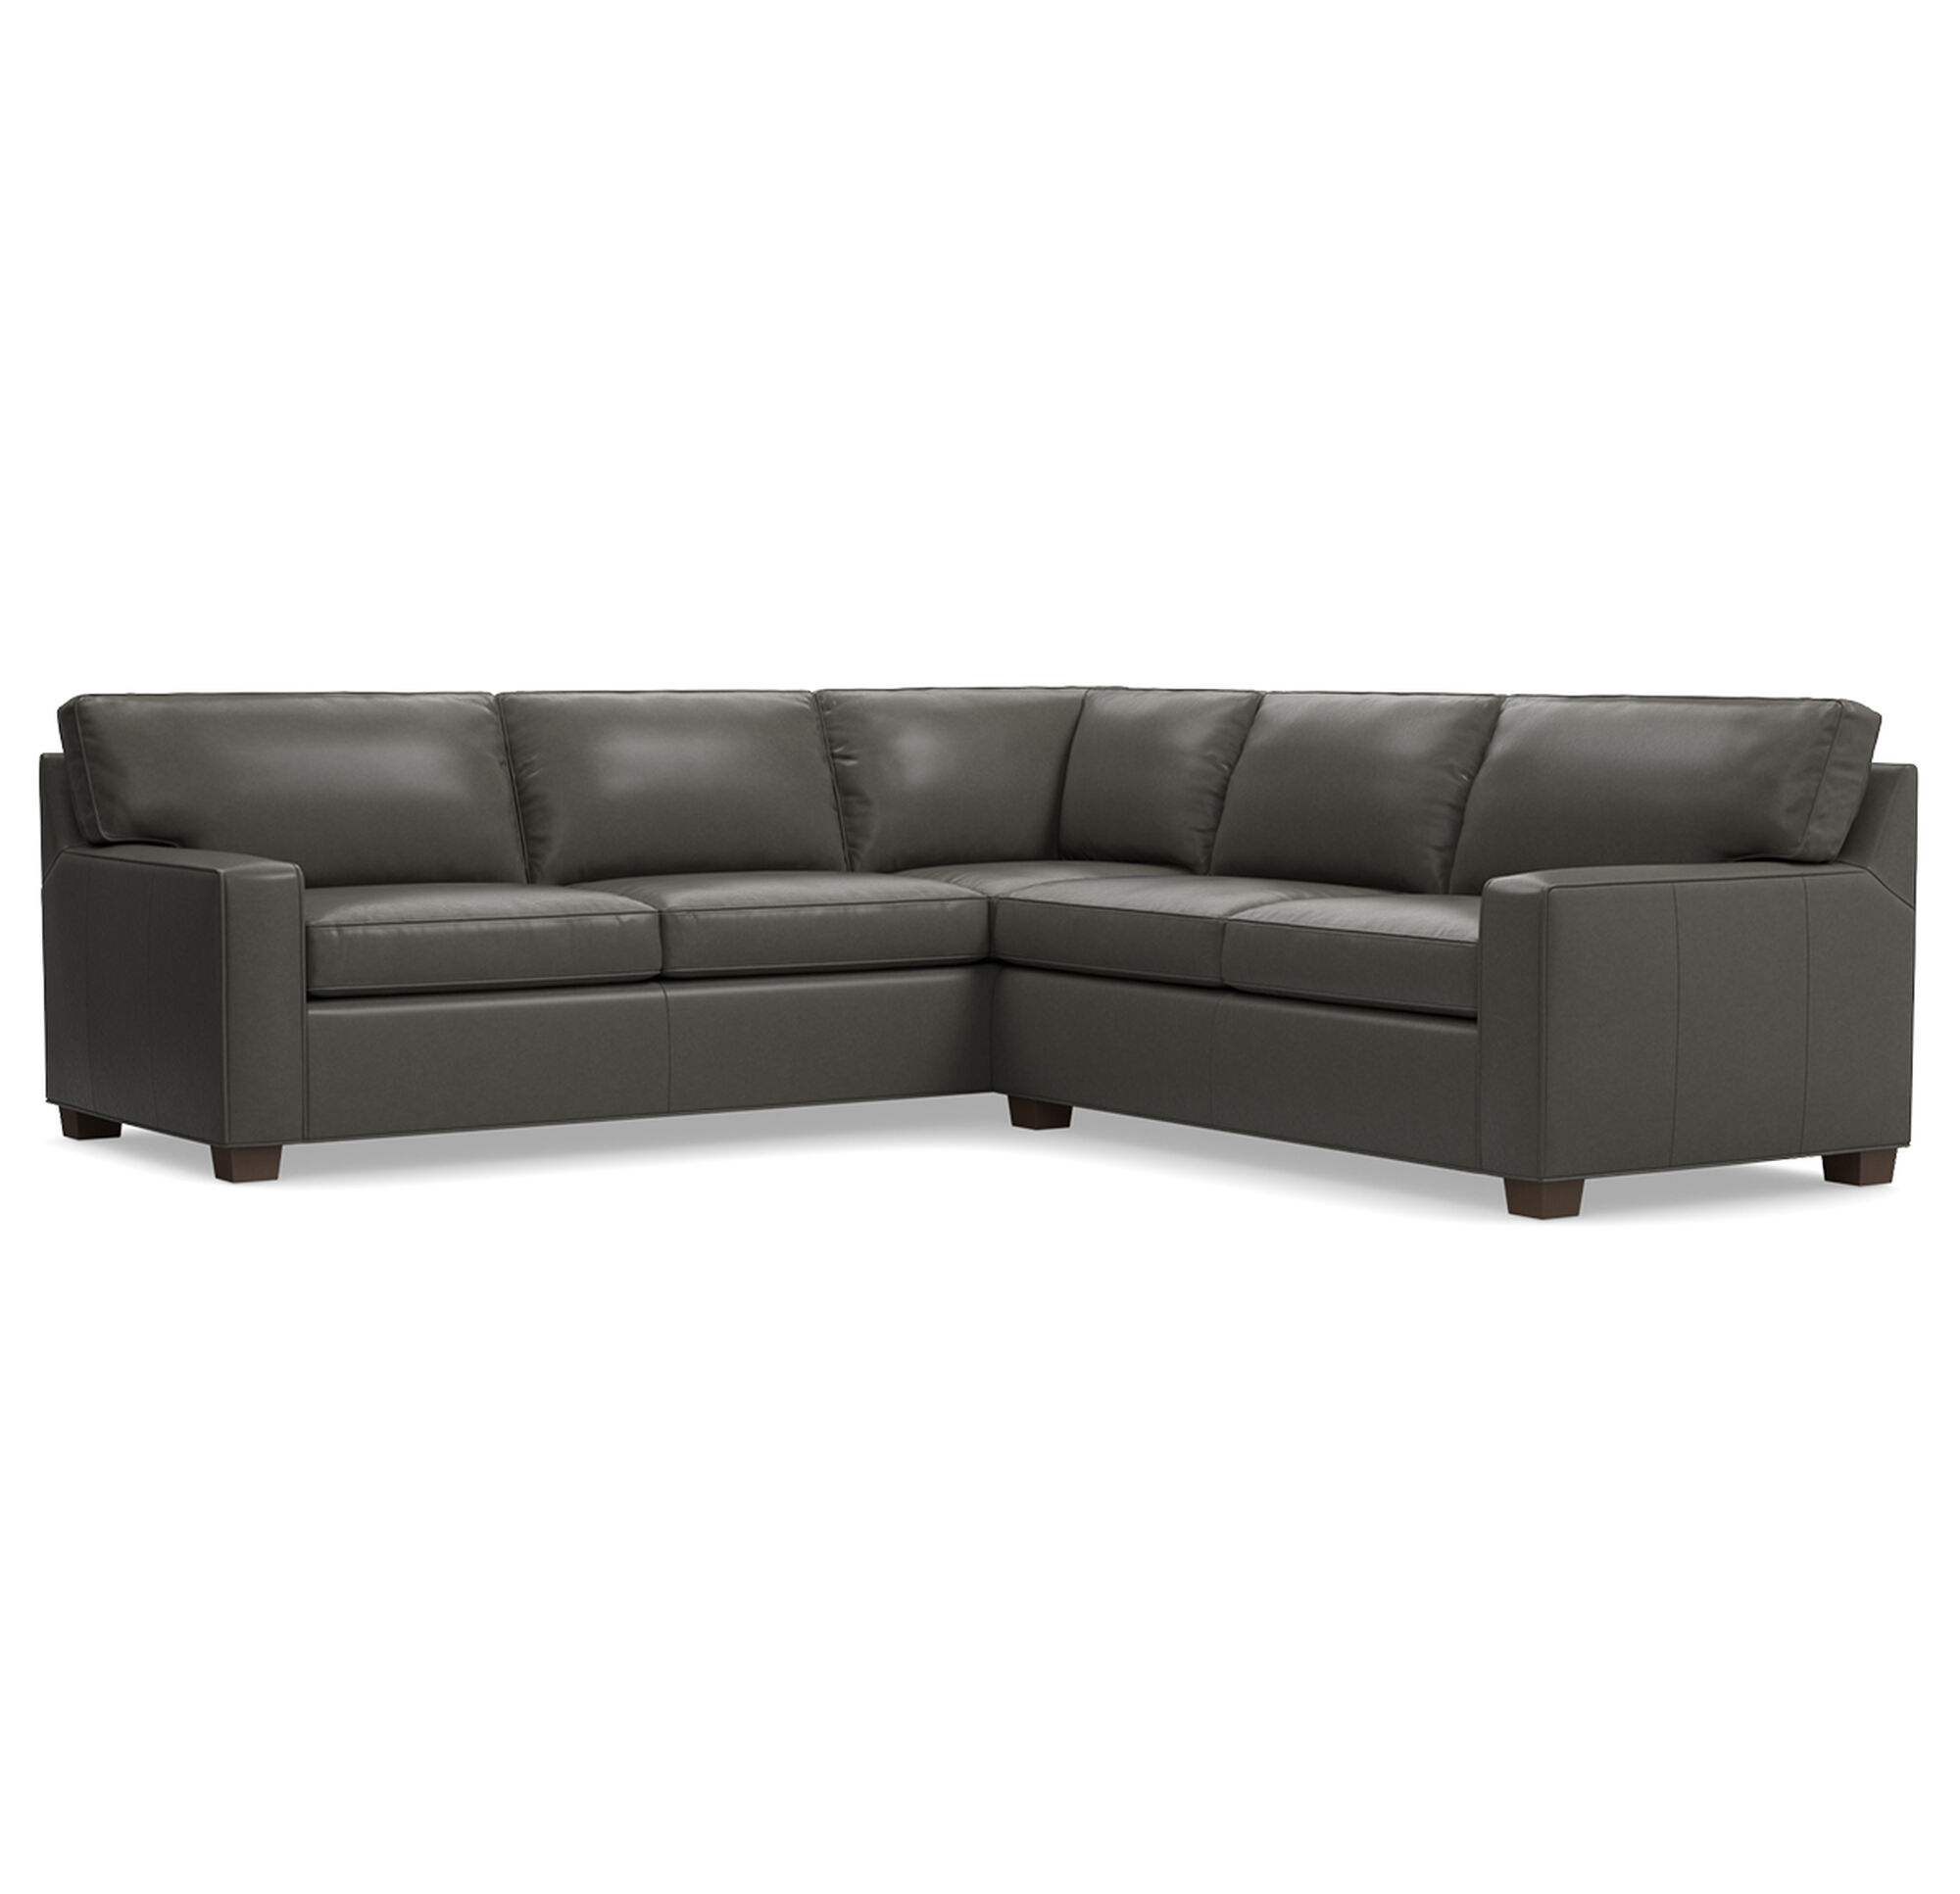 ALEX LEATHER SECTIONAL SOFA